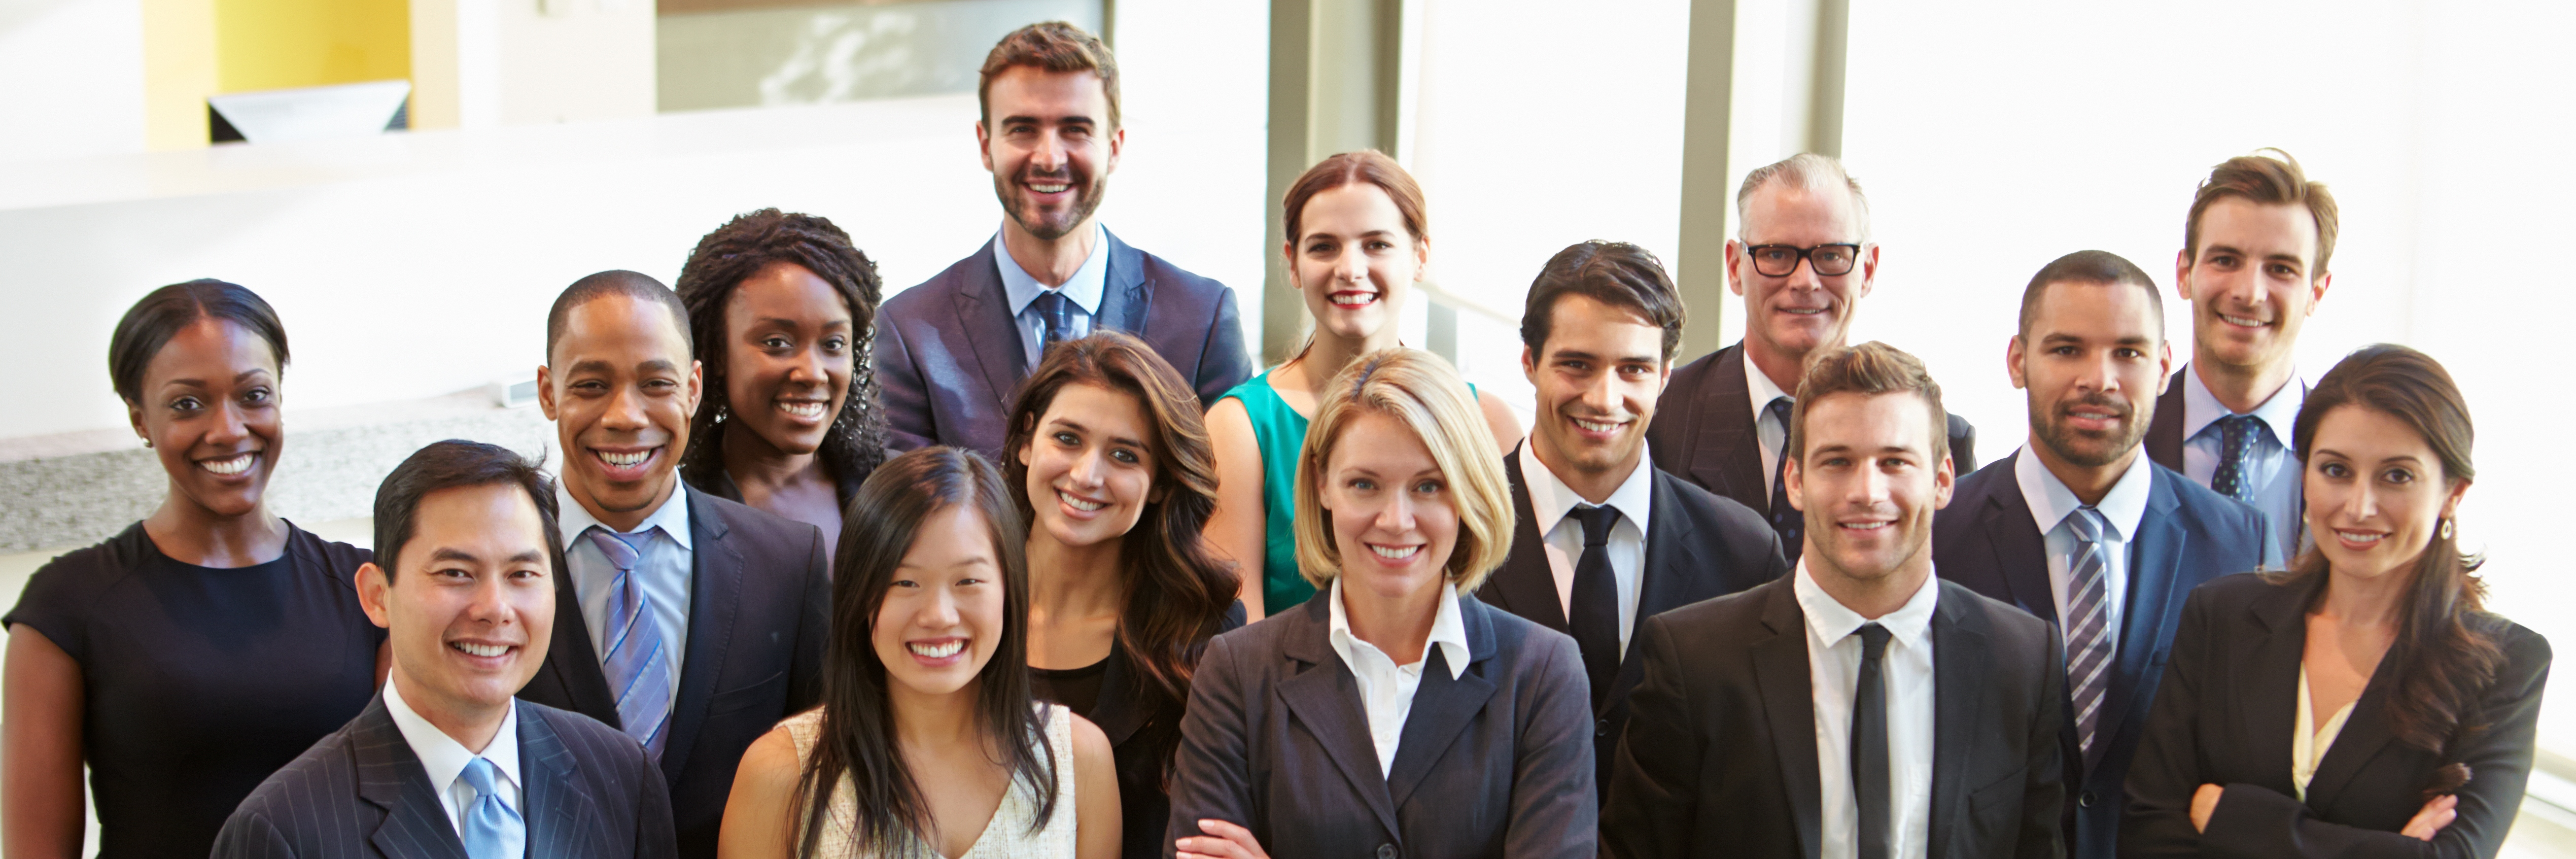 Diverse office work force - Employment Practices Liability (EPL)